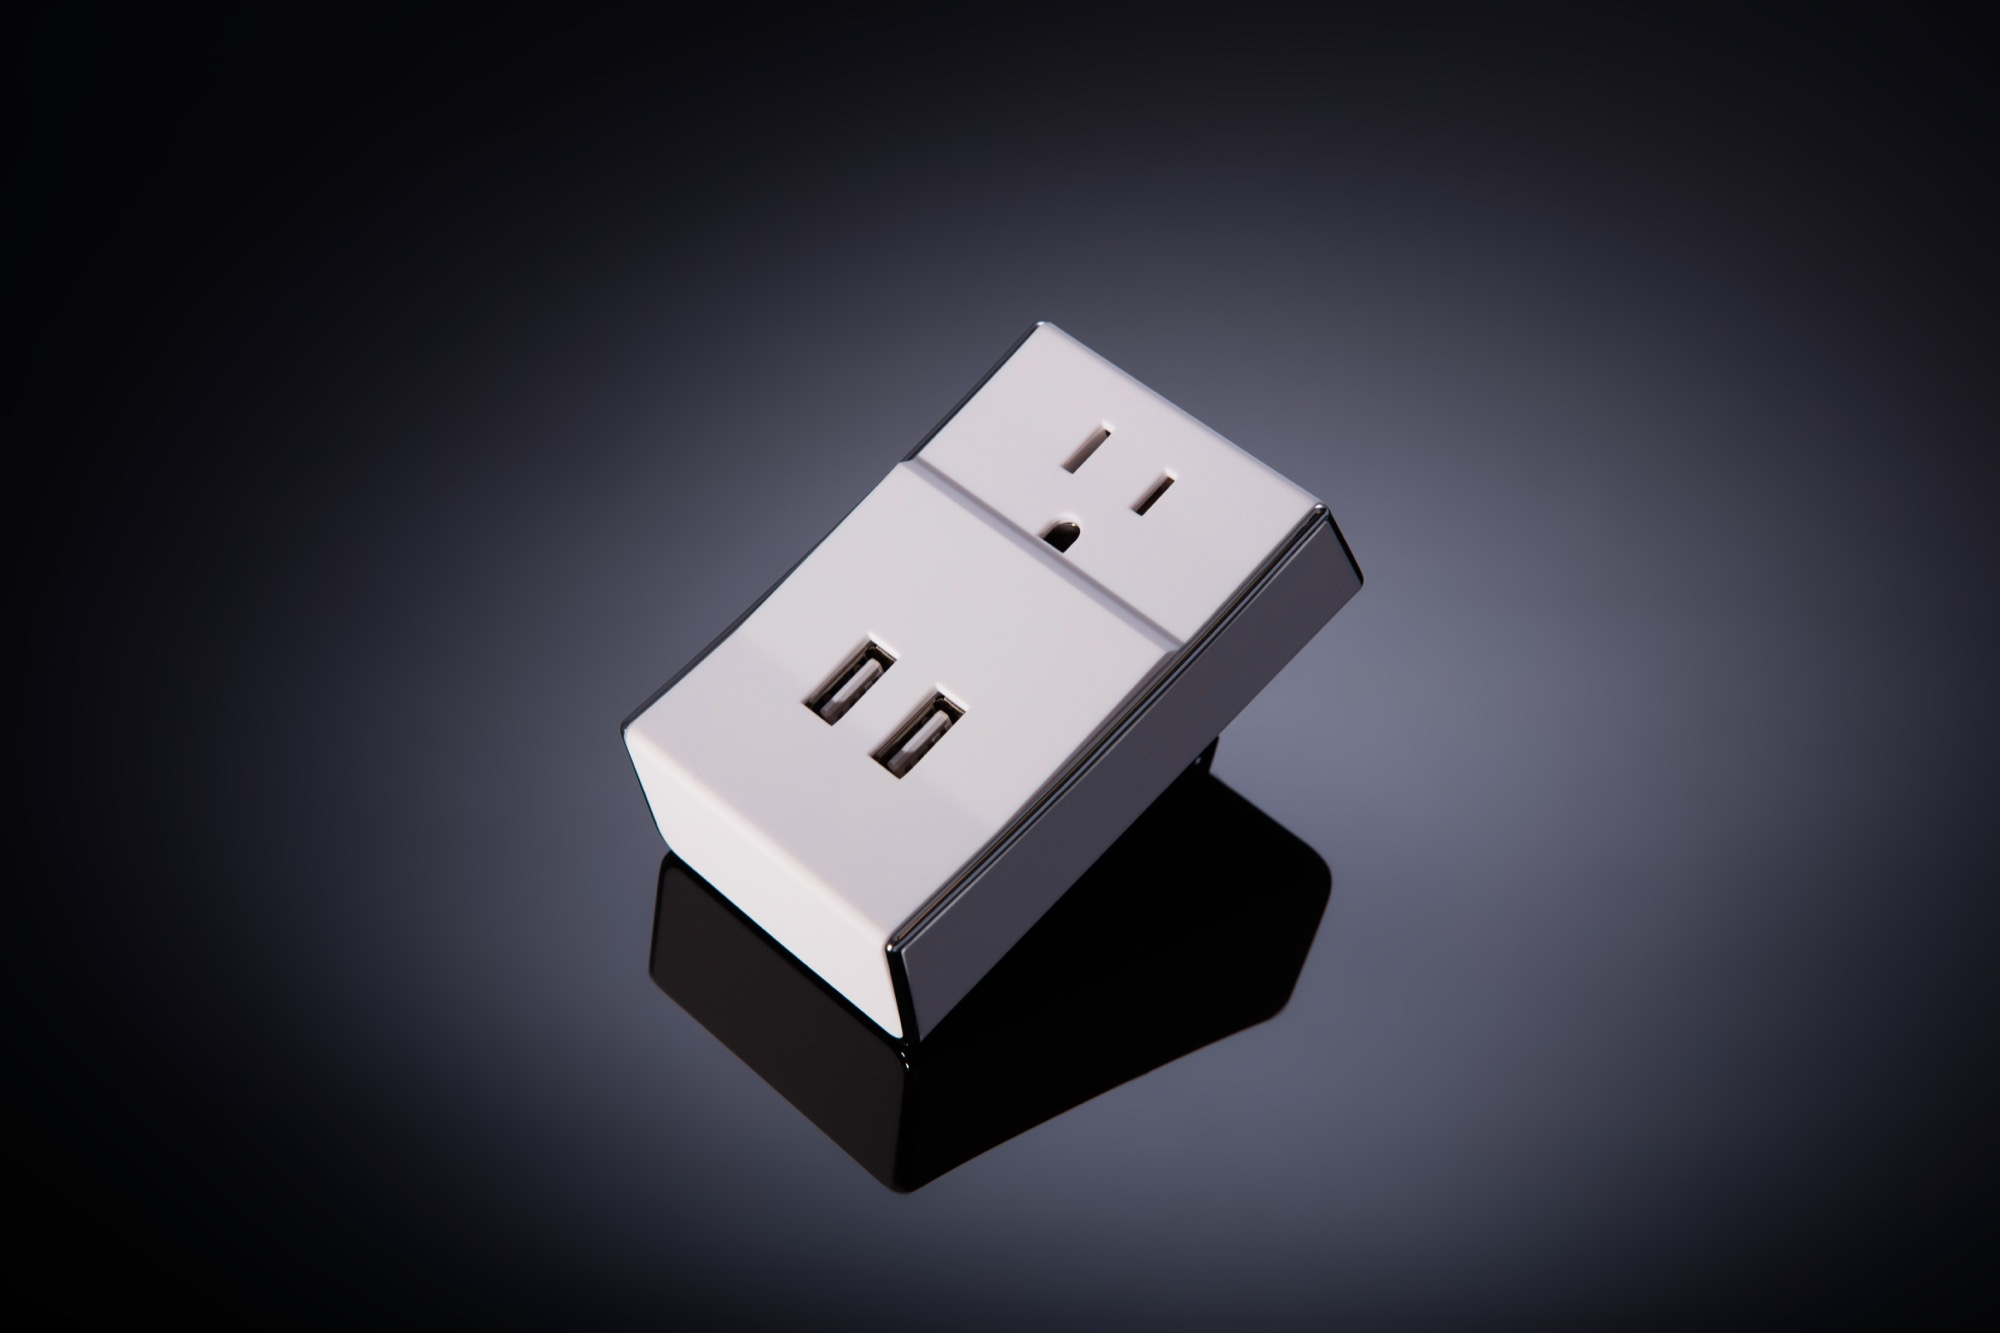 Dual USB Wall Charger with Standard Power Socket | Schatzii